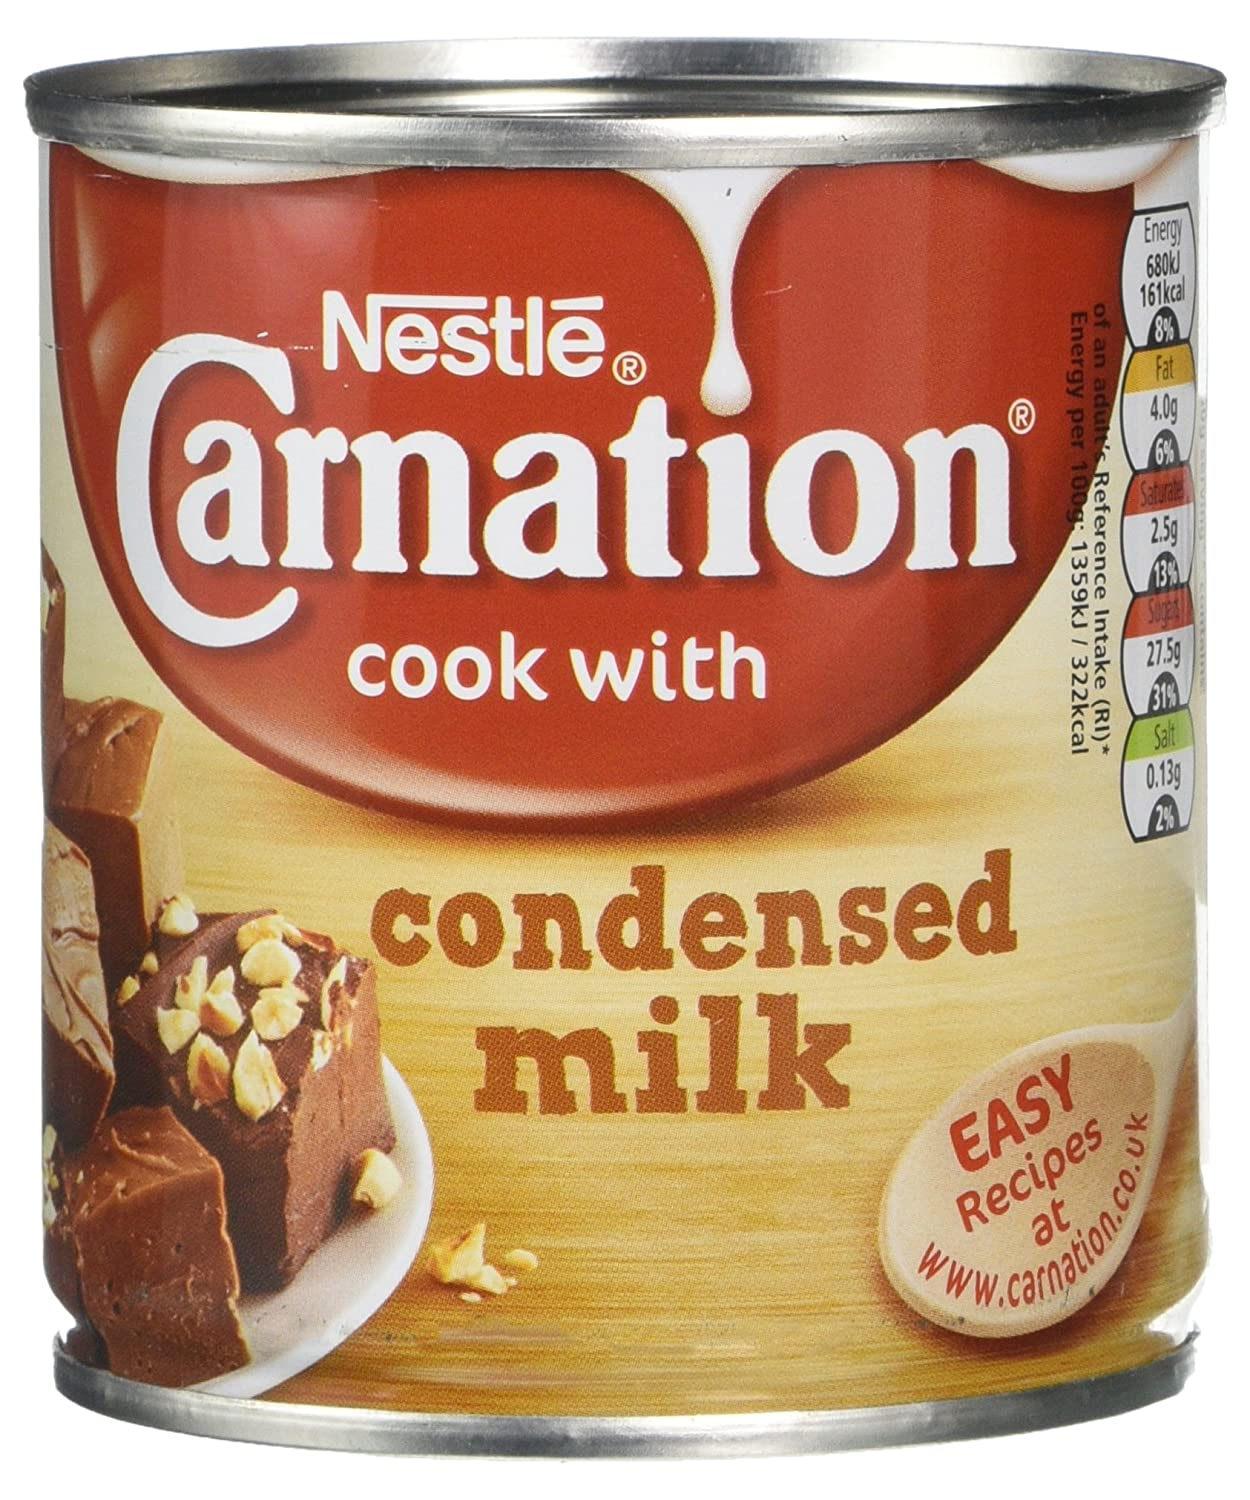 How many grams per can of condensed milk? Classification, benefit and harm of a product 30